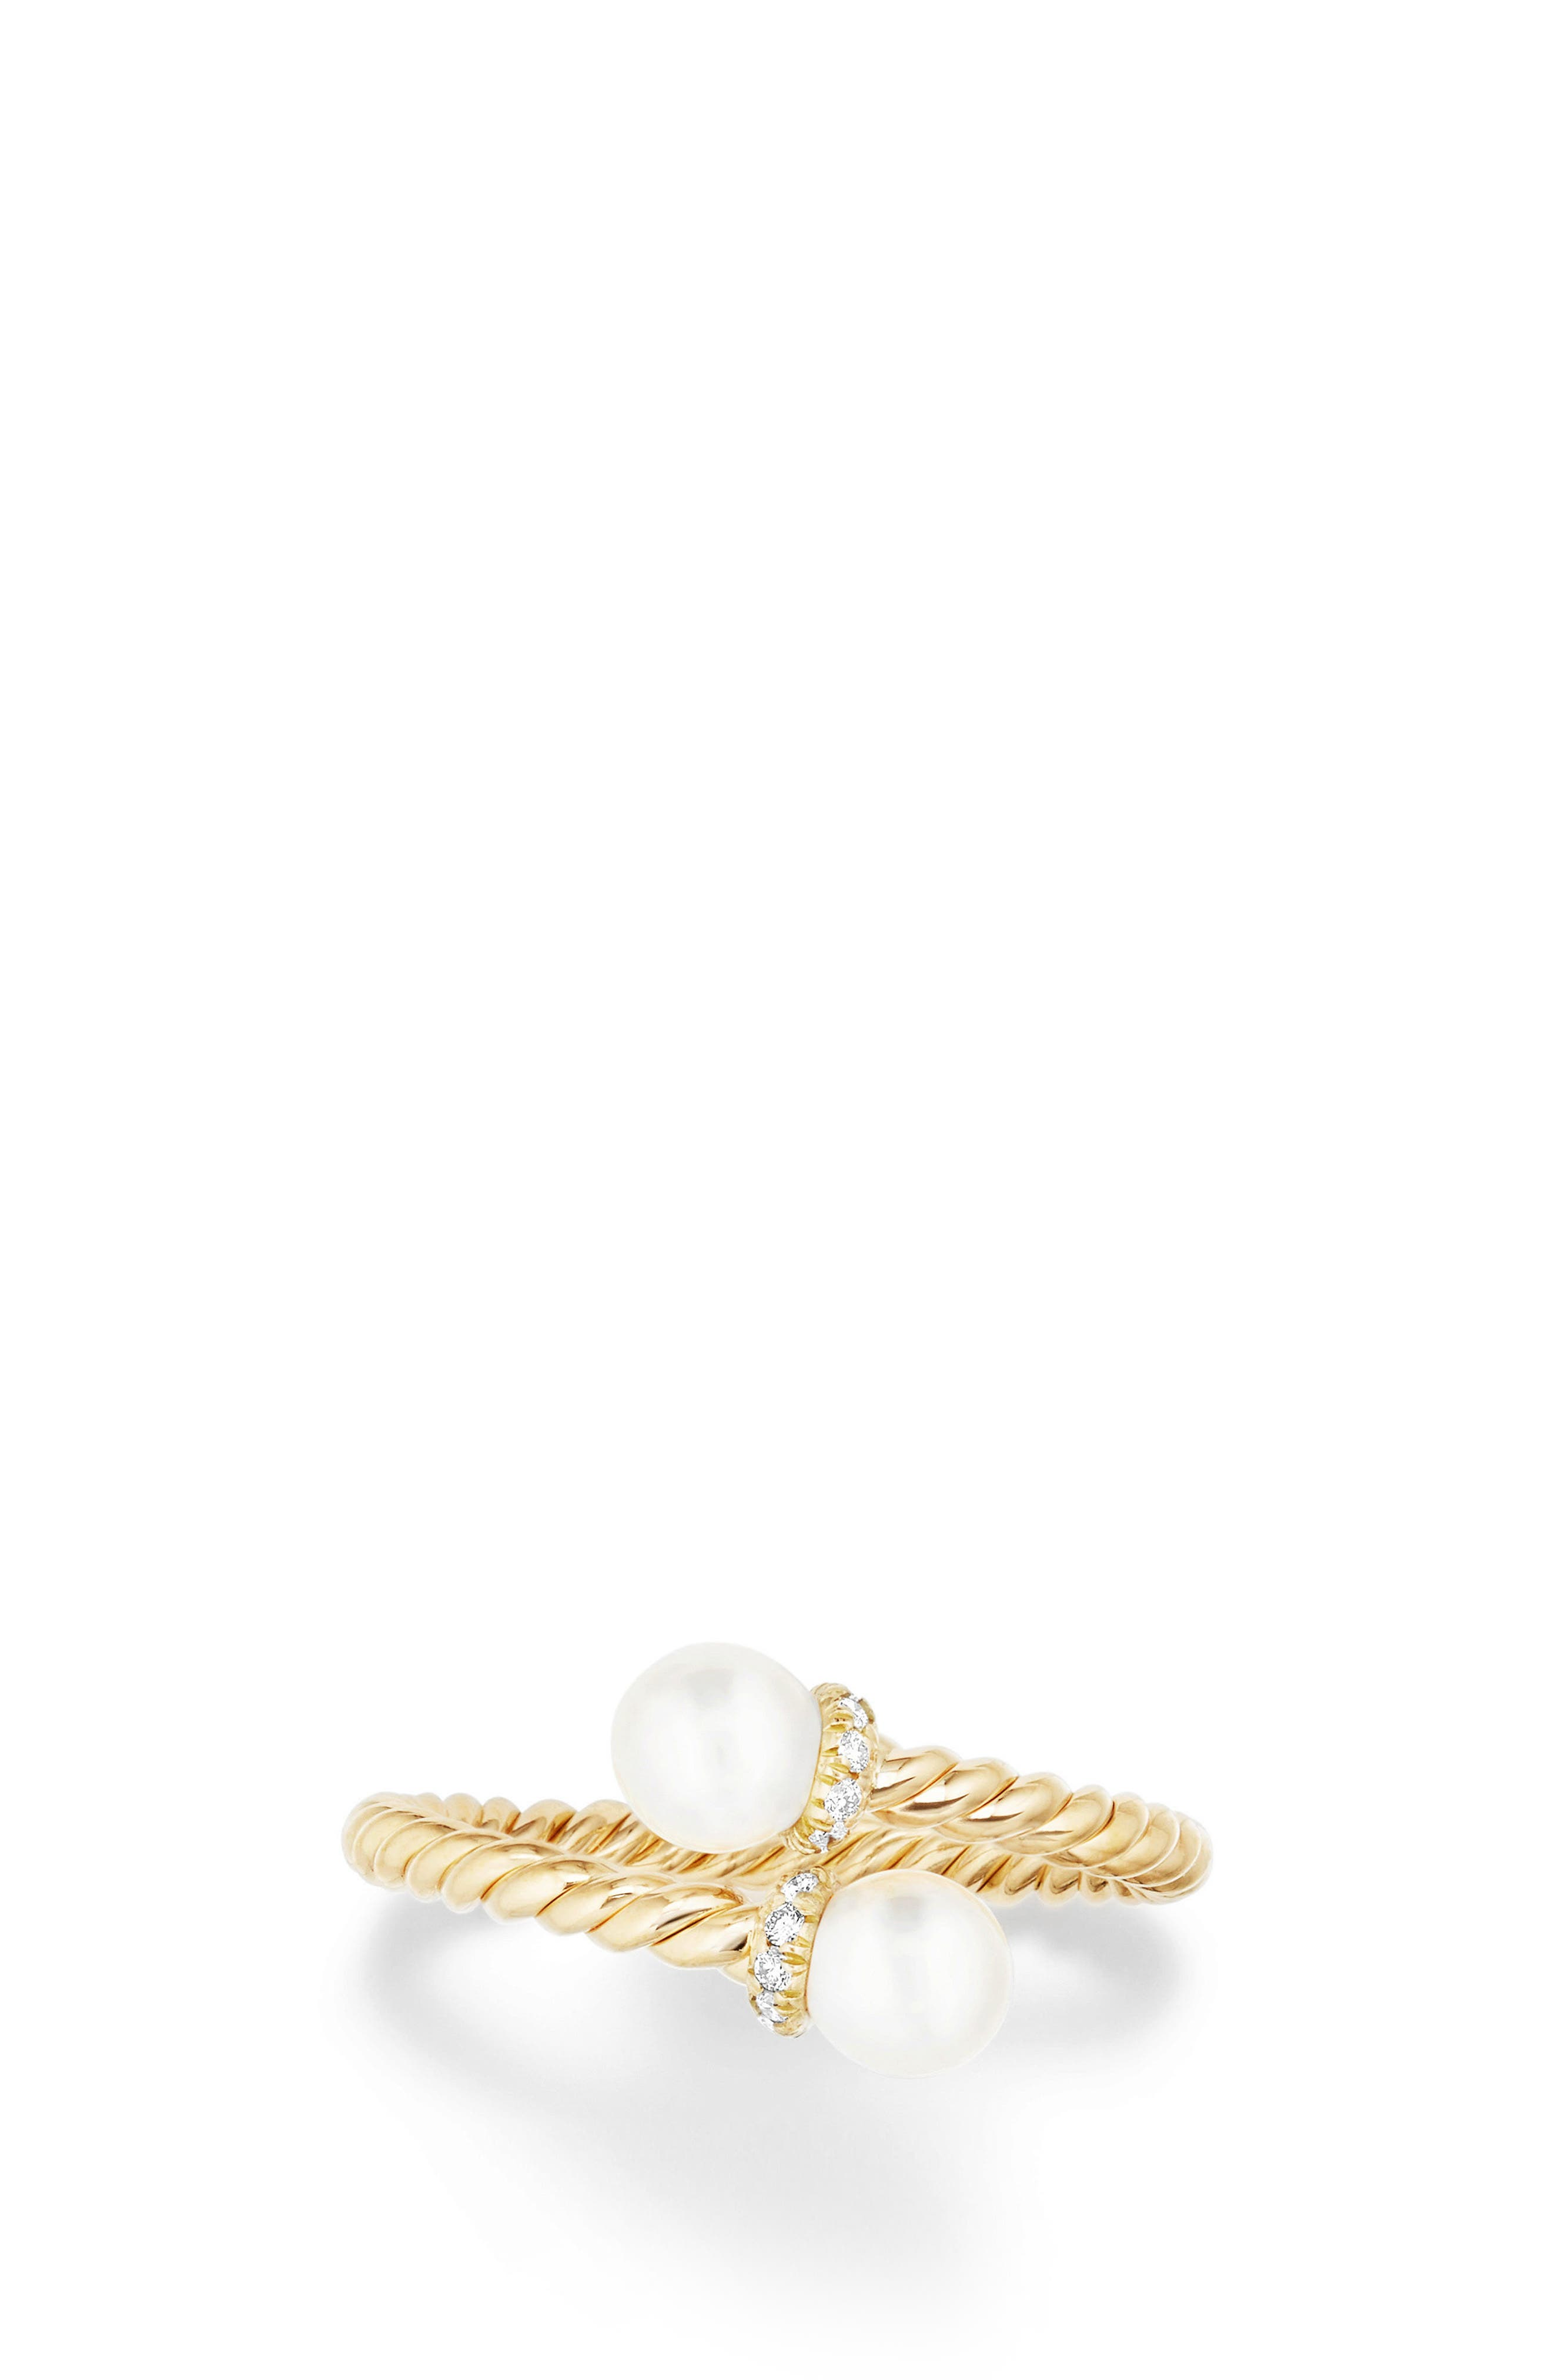 David Yurman Solari Bypass Ring with Pearls & Diamonds in 18K Gold